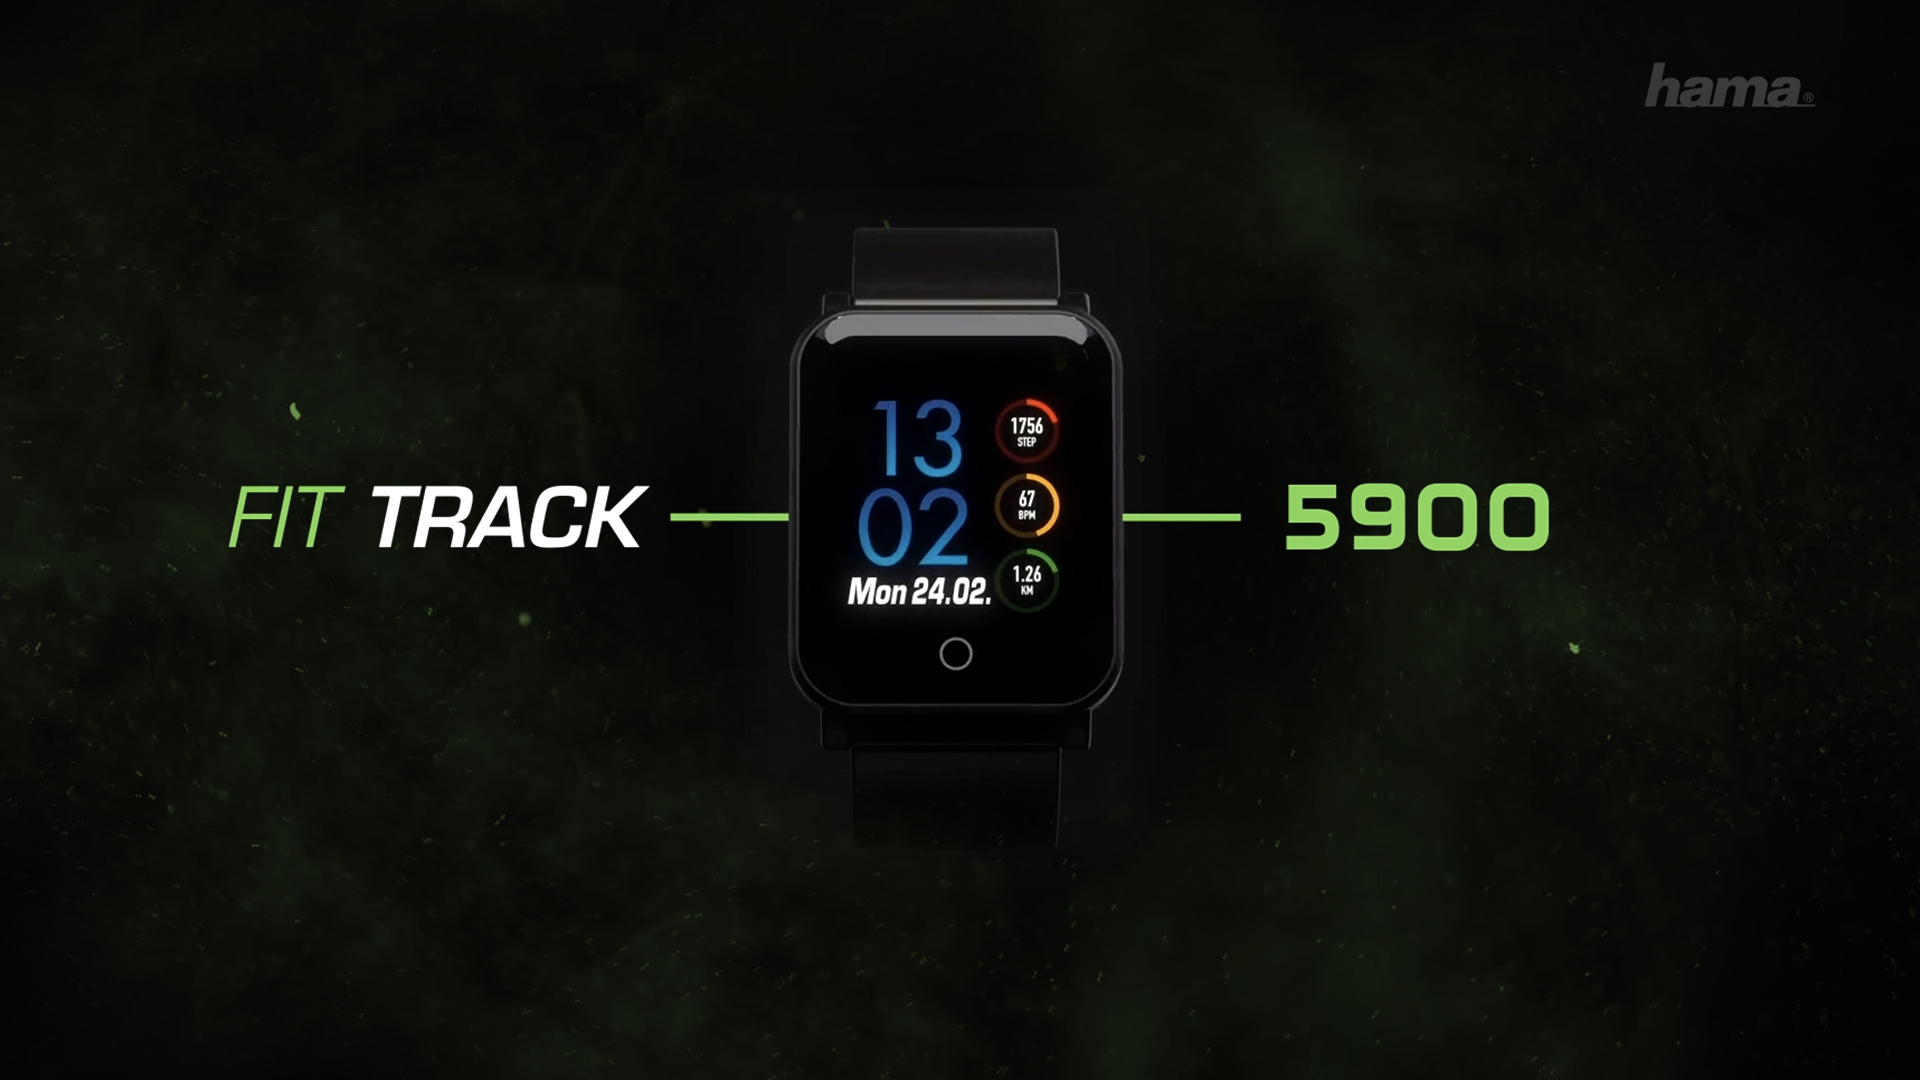 "Hama ""Fit Track 5900"" Fitness Tracker"